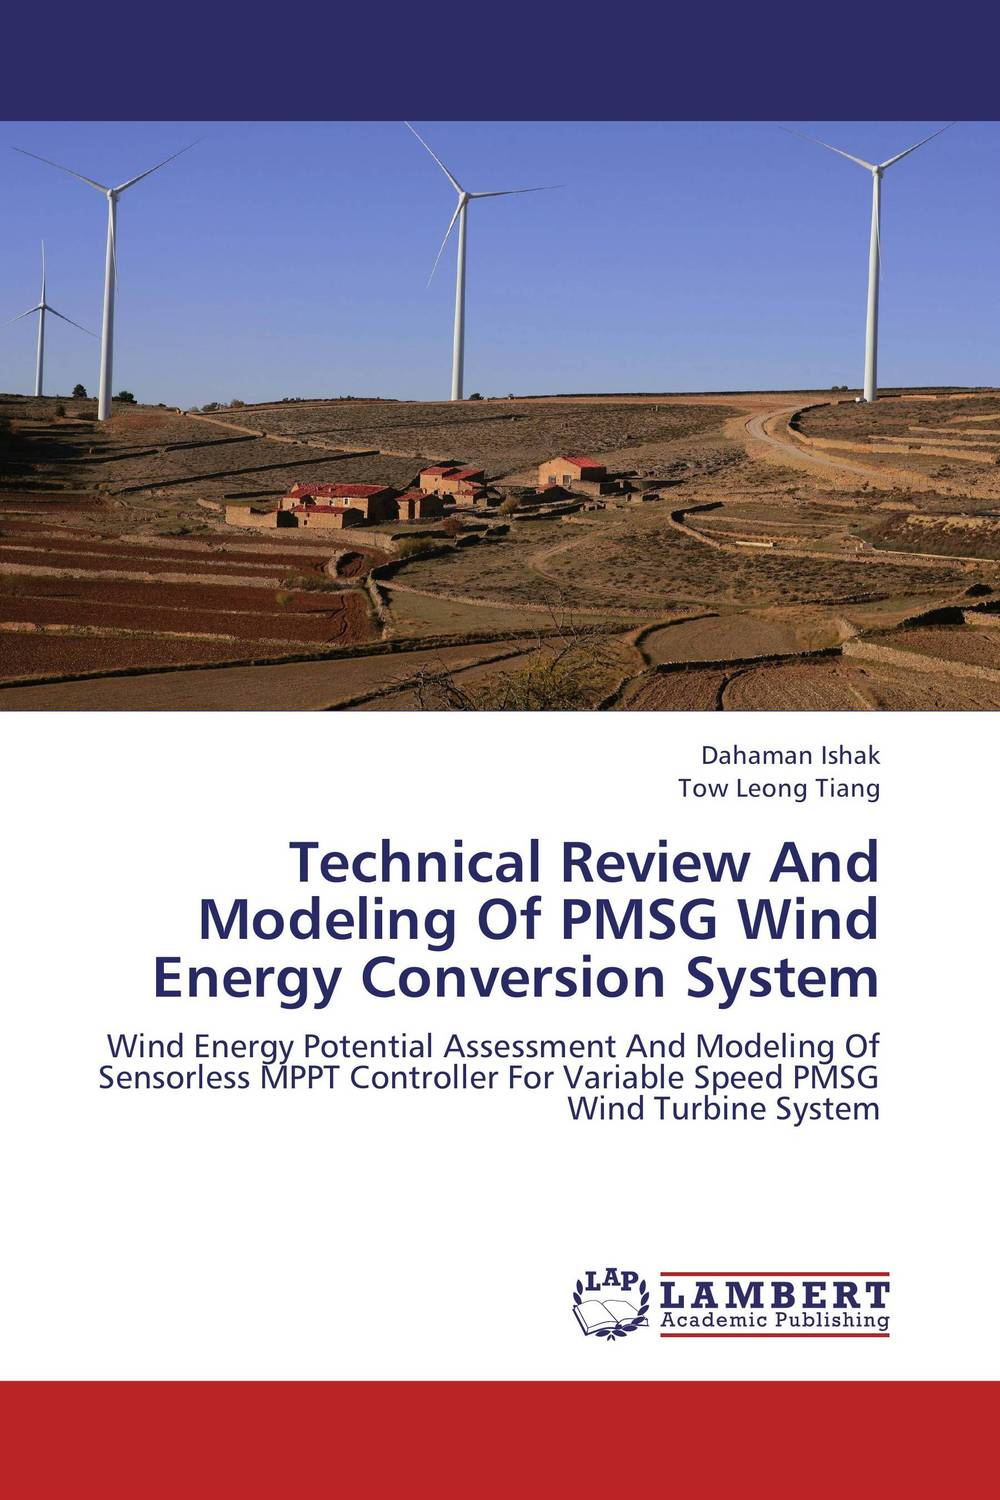 Technical Review And Modeling Of PMSG Wind Energy Conversion System bond graph modeling and diagnosis in wind energy conversion system